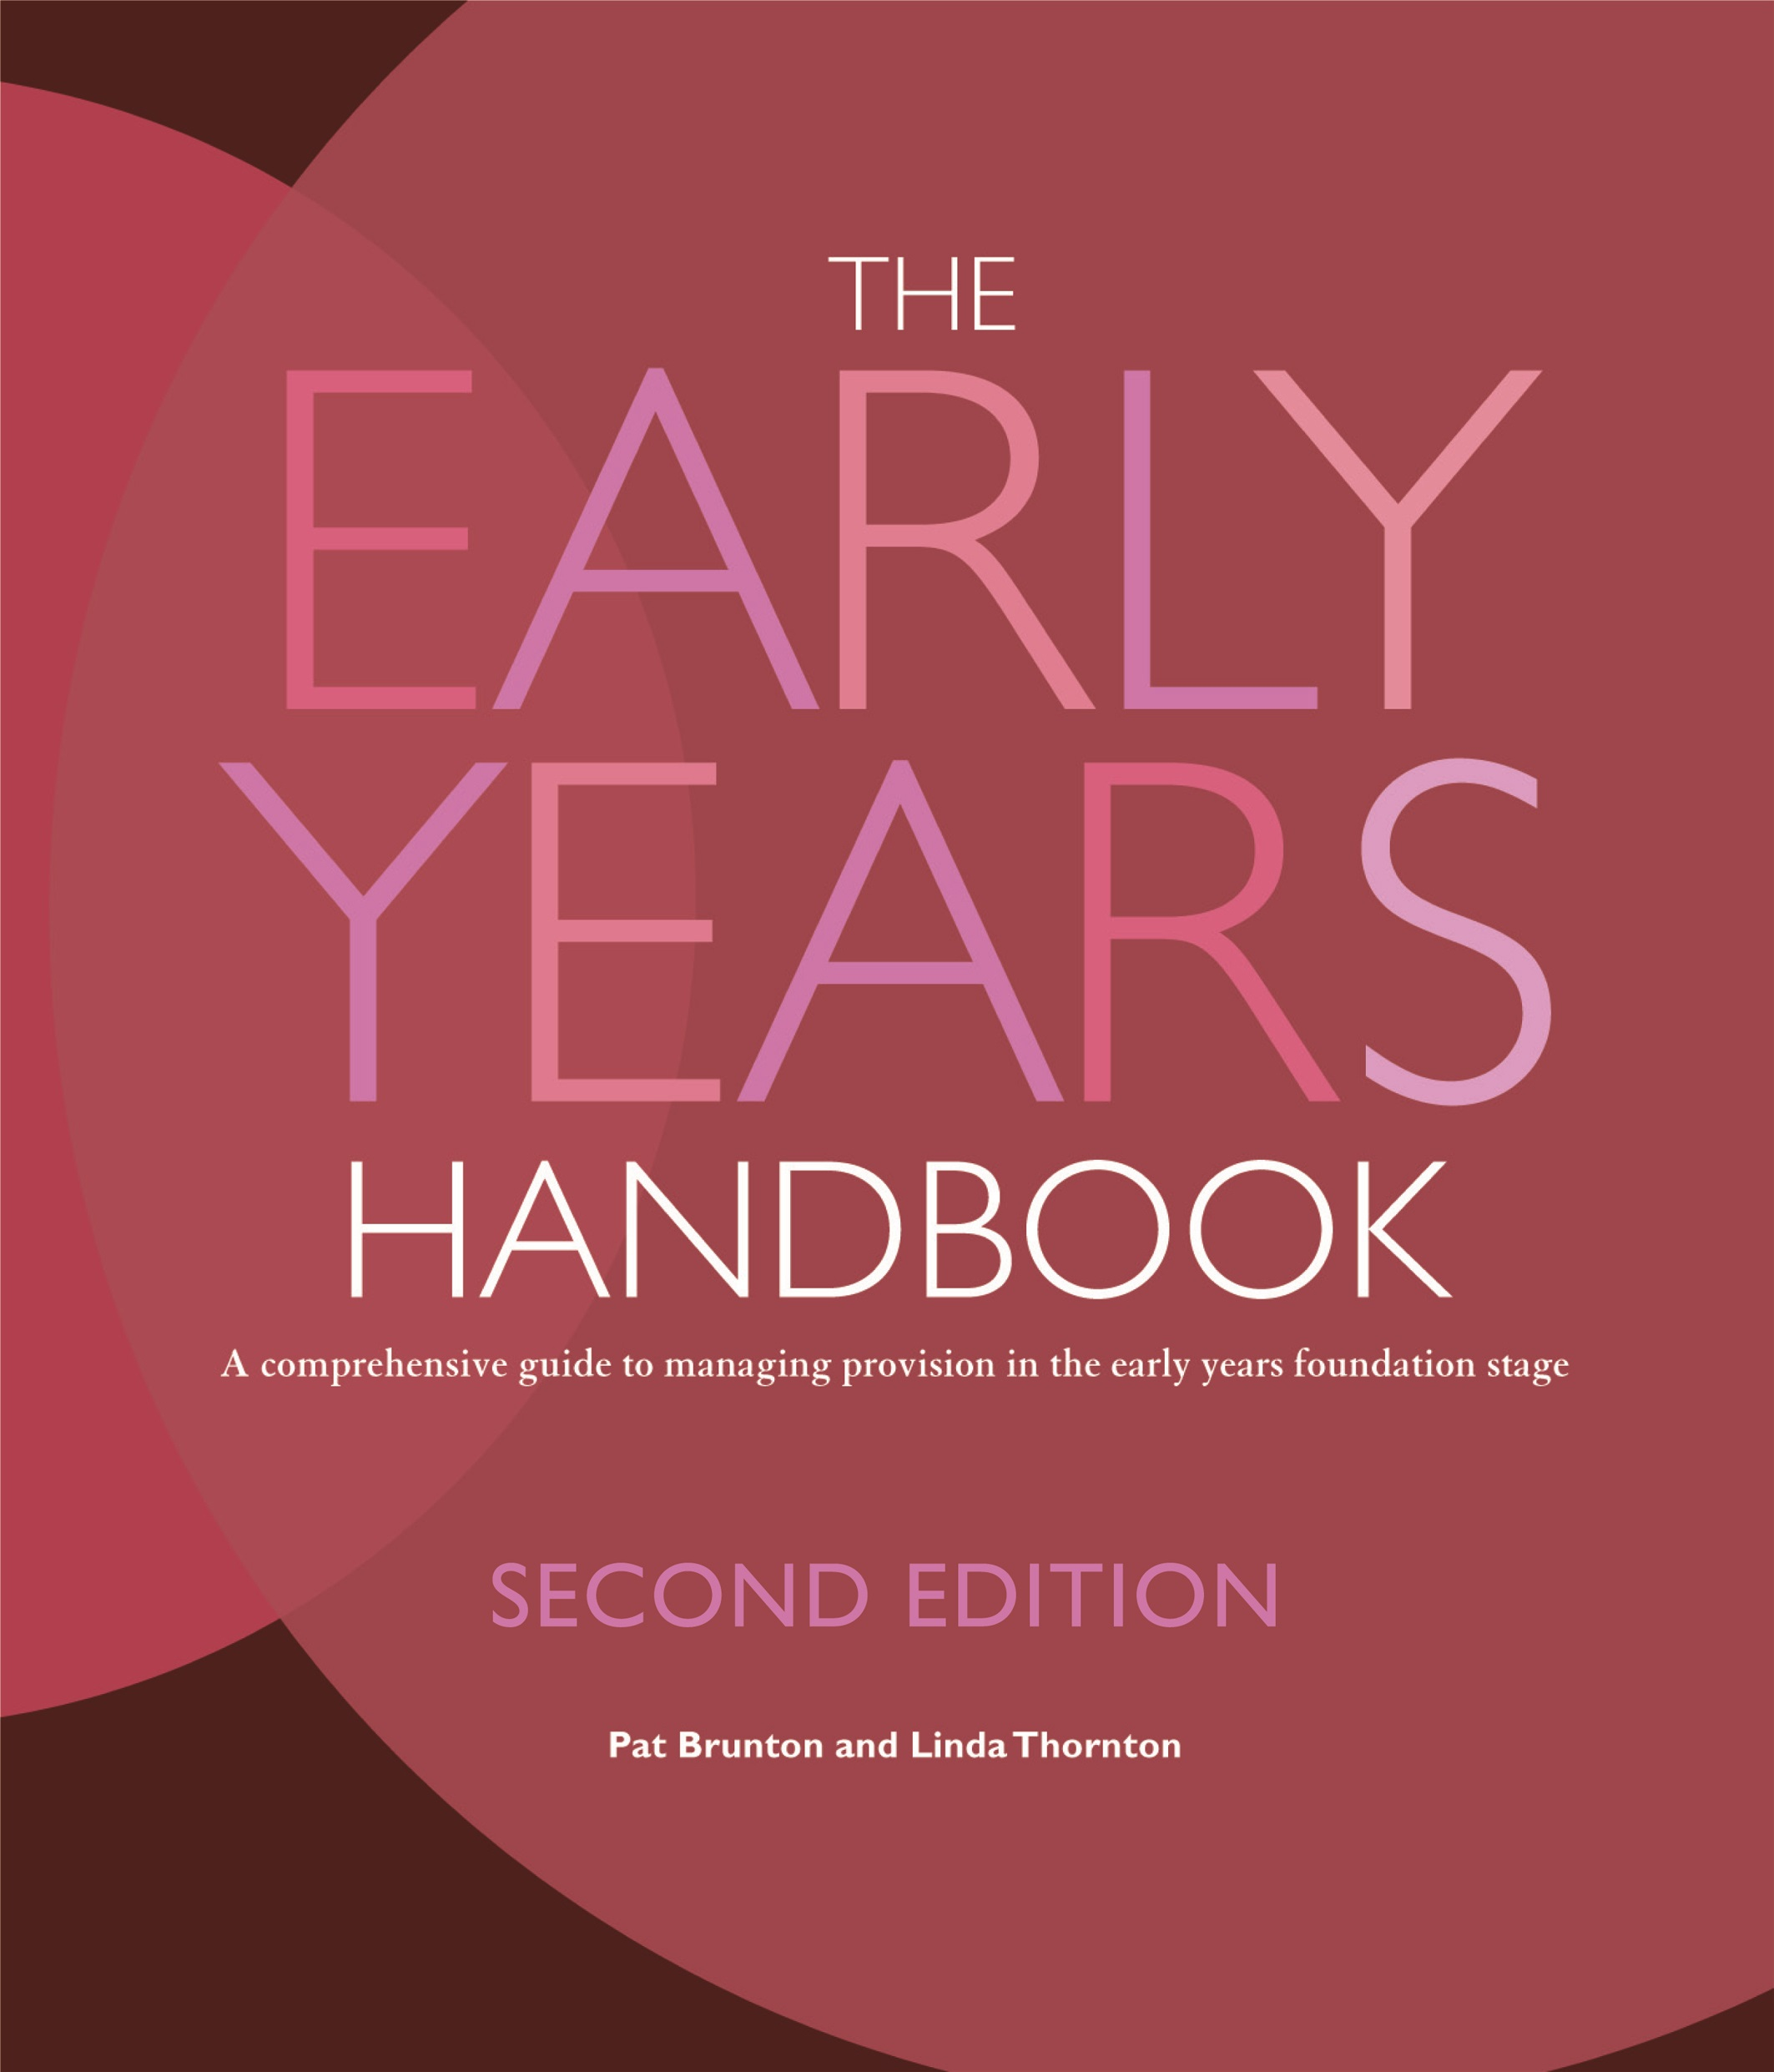 The Early Years Handbook: Second Edition